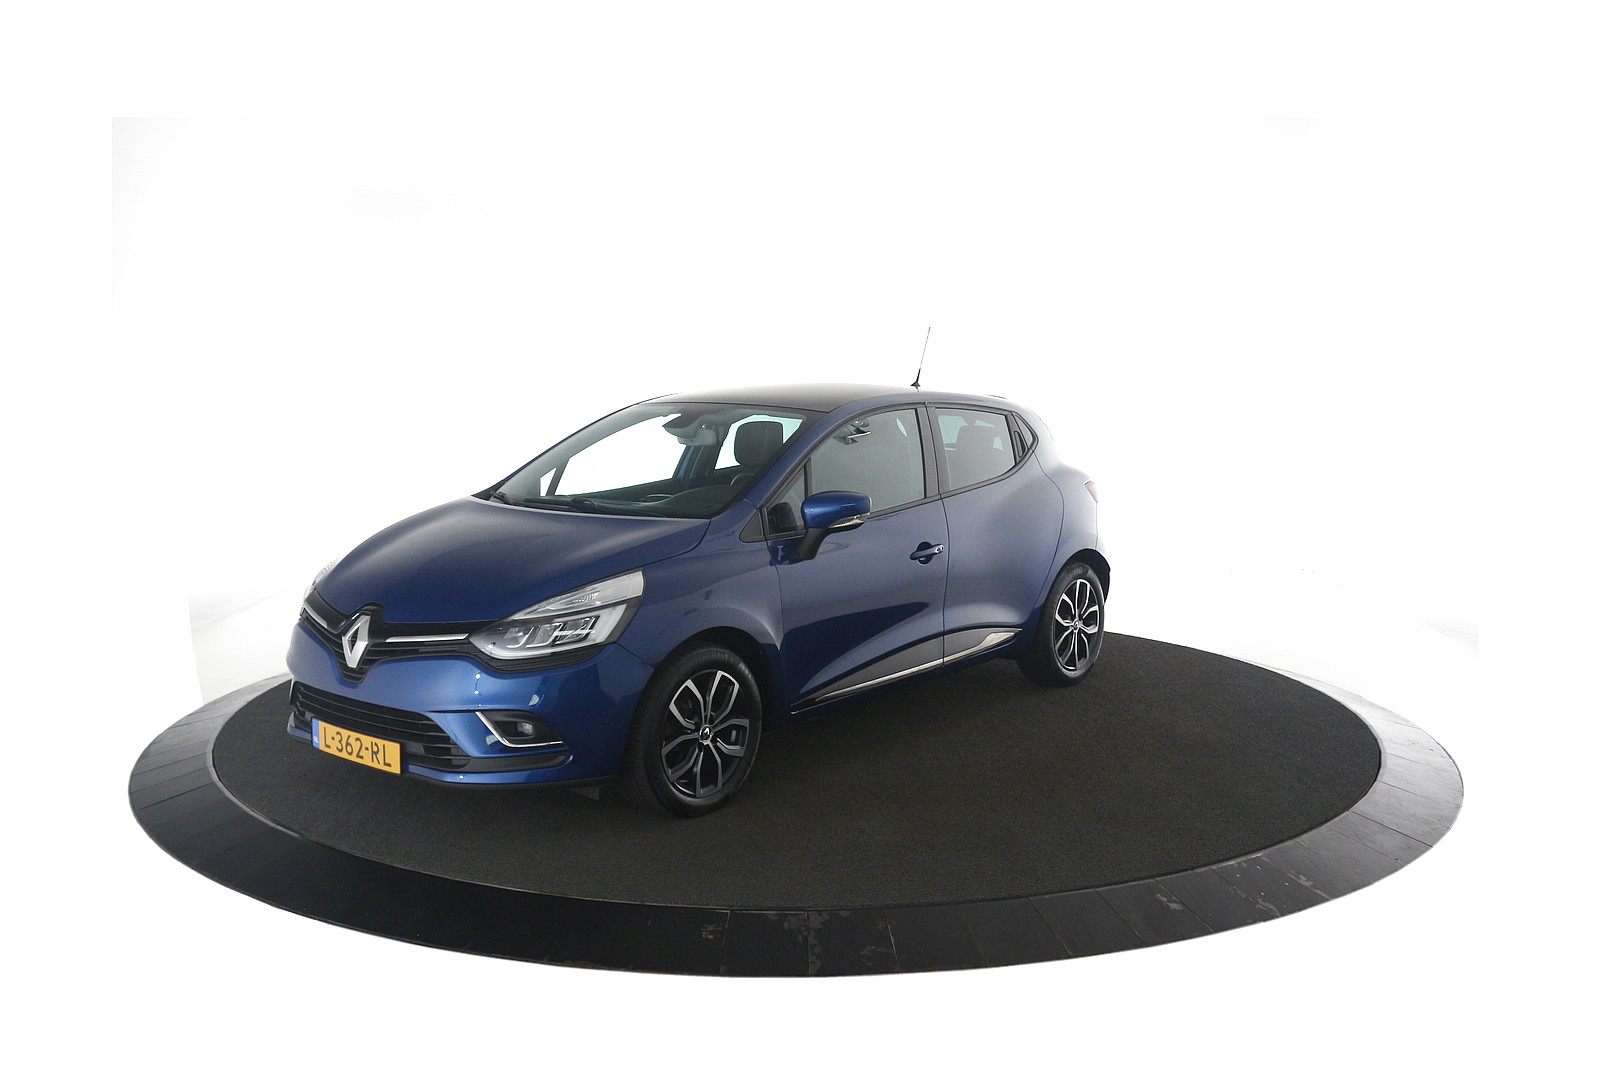 Renault Clio 1.2 TCe Intens